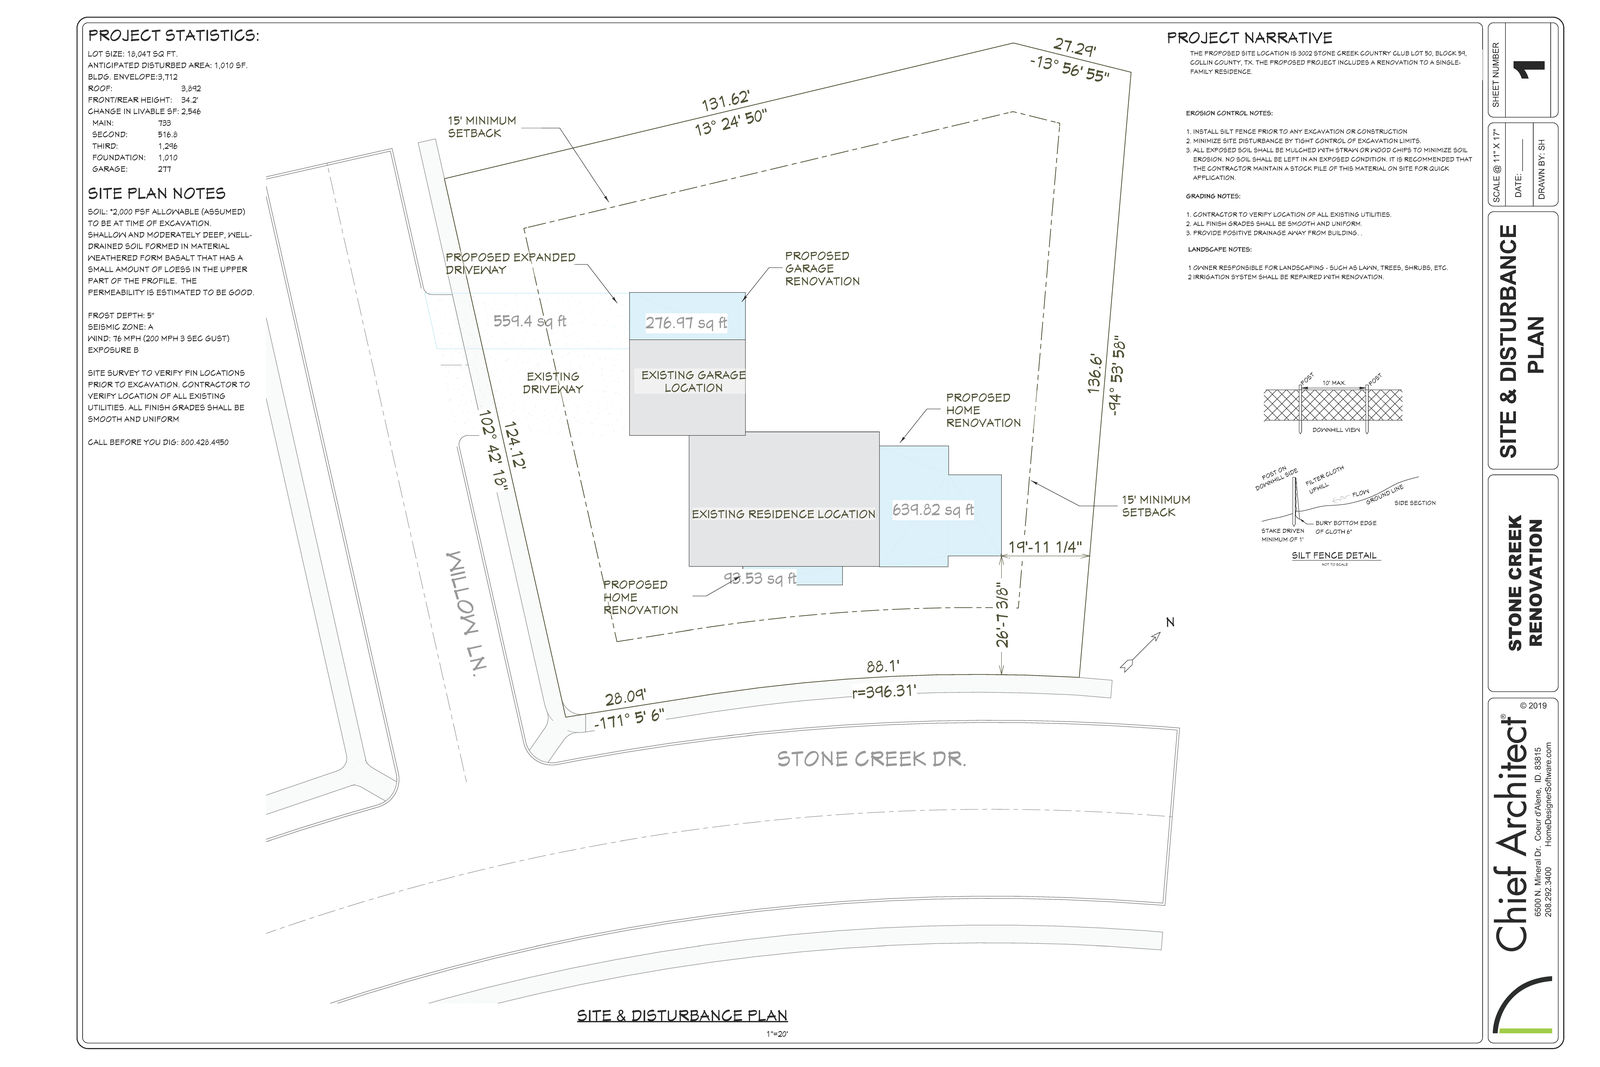 A site and disturbance plan for the Stone Creek renovation.